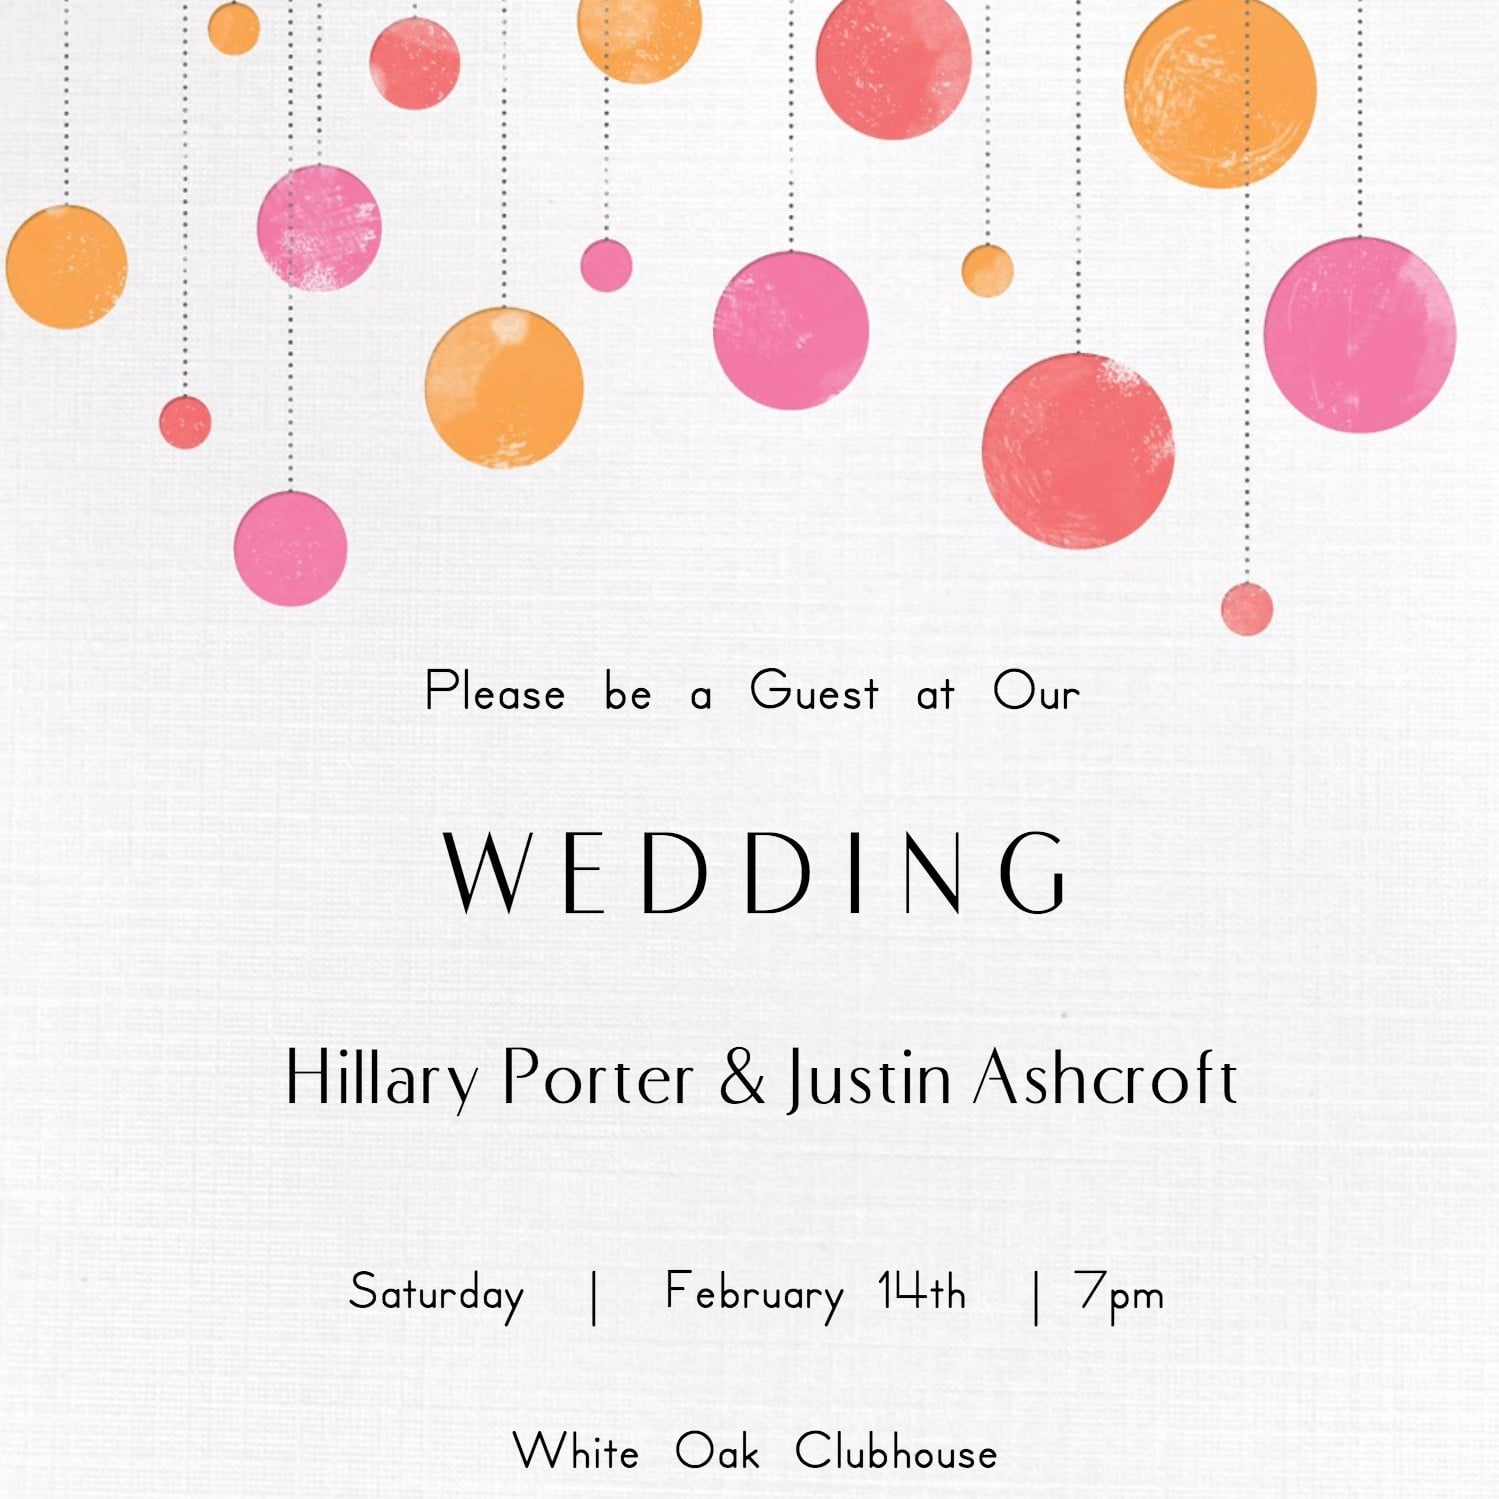 wedding cards printable - Selo.l-ink.co